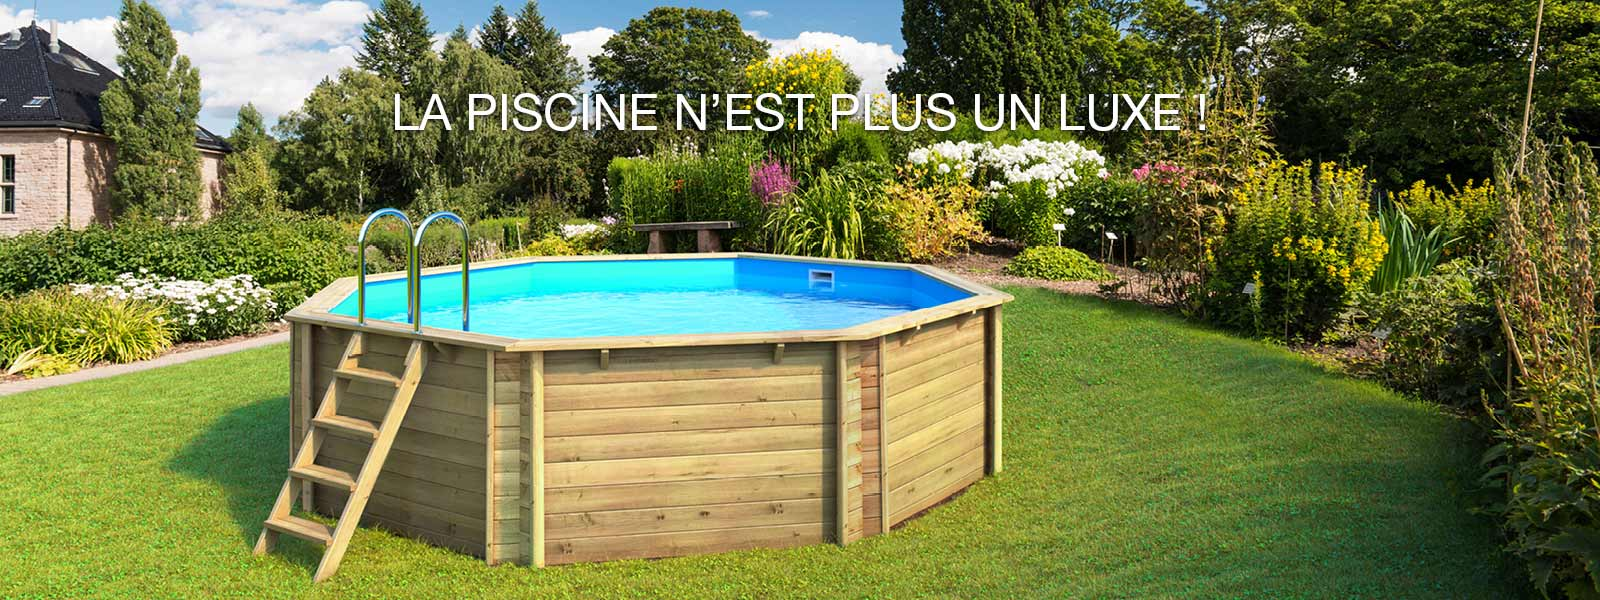 piscine en bois leroy merlin piscine enterr e leroy merlin leroy merlin piscine hors sol bois. Black Bedroom Furniture Sets. Home Design Ideas